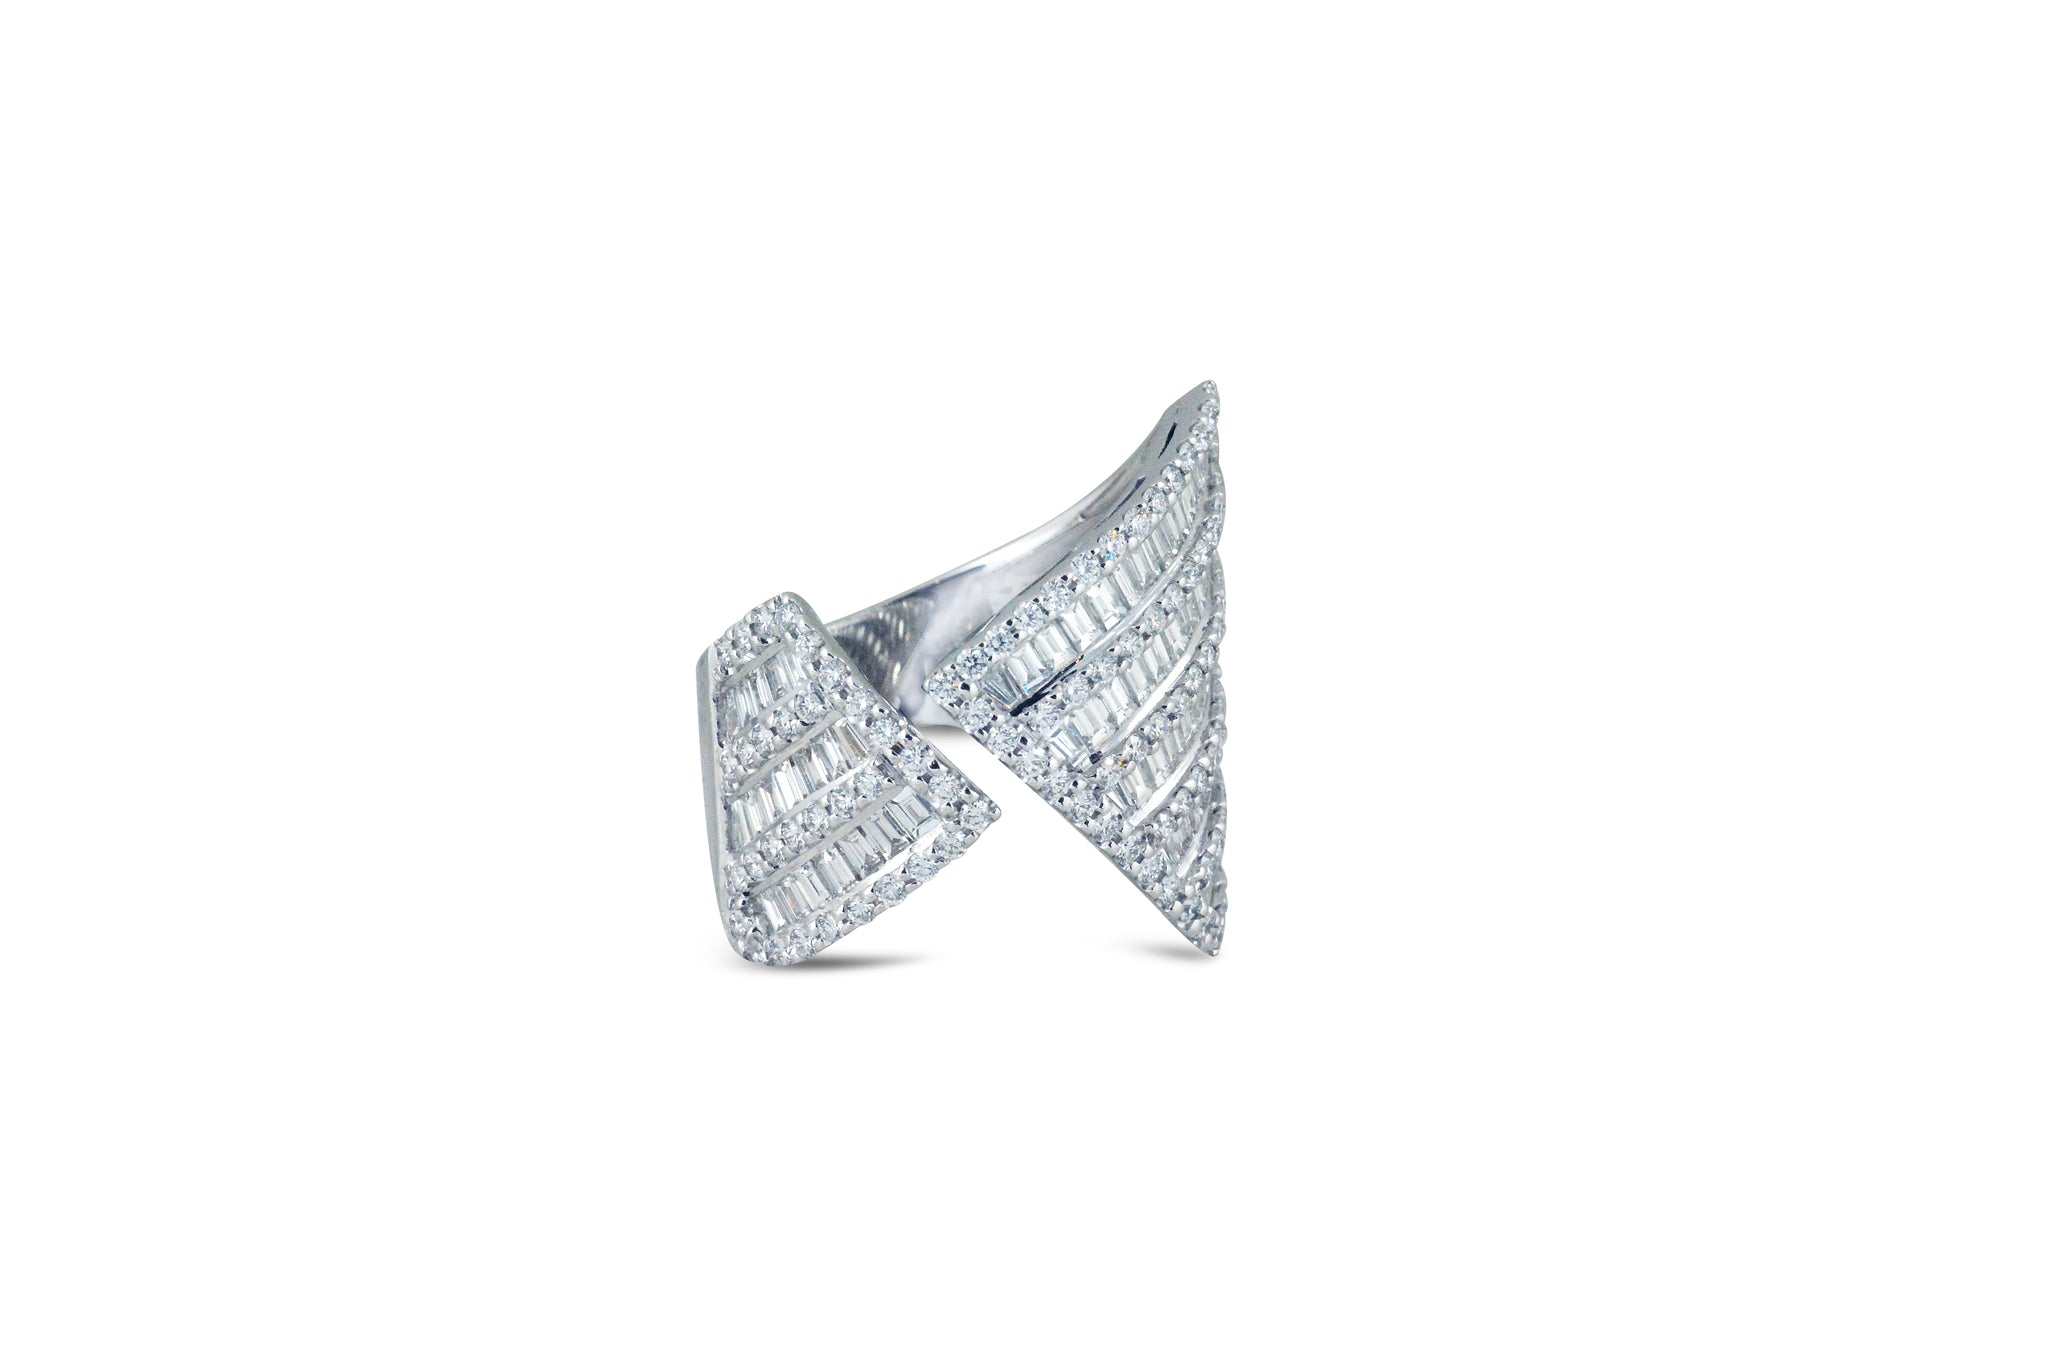 Origami Asymmetry Diamond Ring as seen on Jennifer Lopez